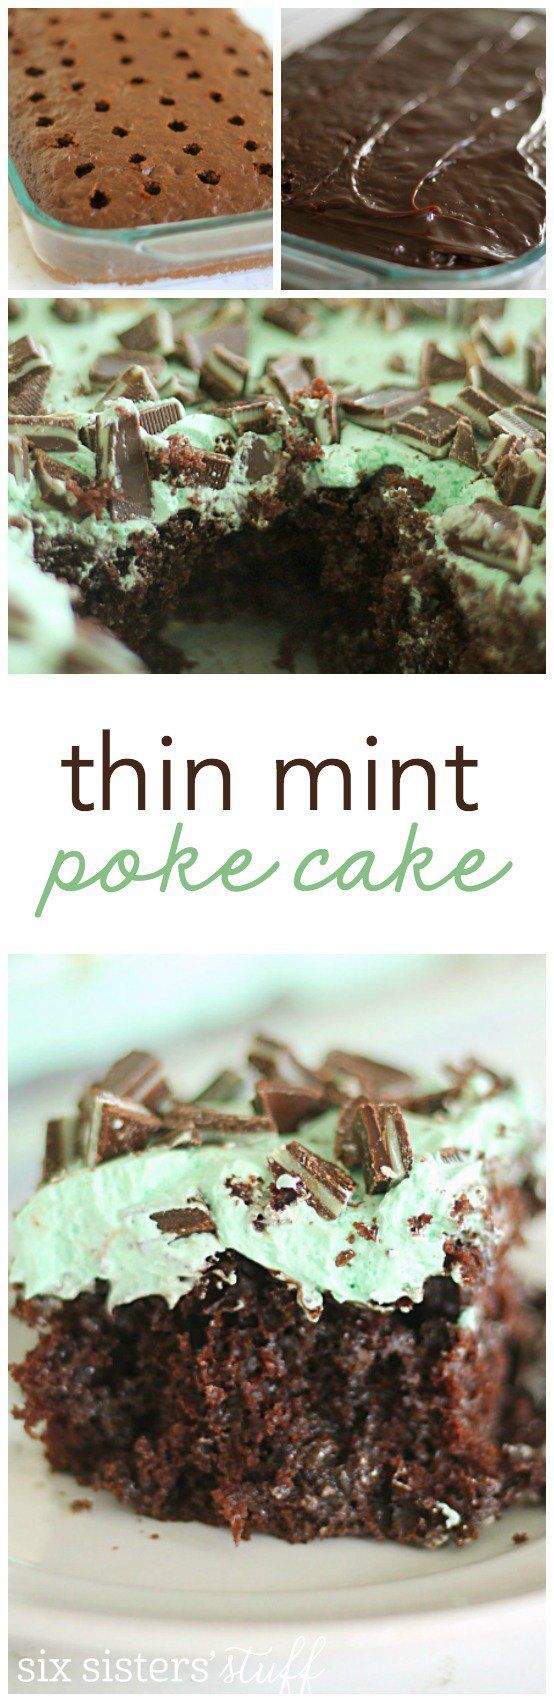 Thin Mint Poke Cake from SixSistersStuff.com | Chocolate Cake smothered in hot fudge, creamy mint frosting and andes mints. This is one dessert you do not want to miss! | Best Dessert Ideas | Easter Dessert